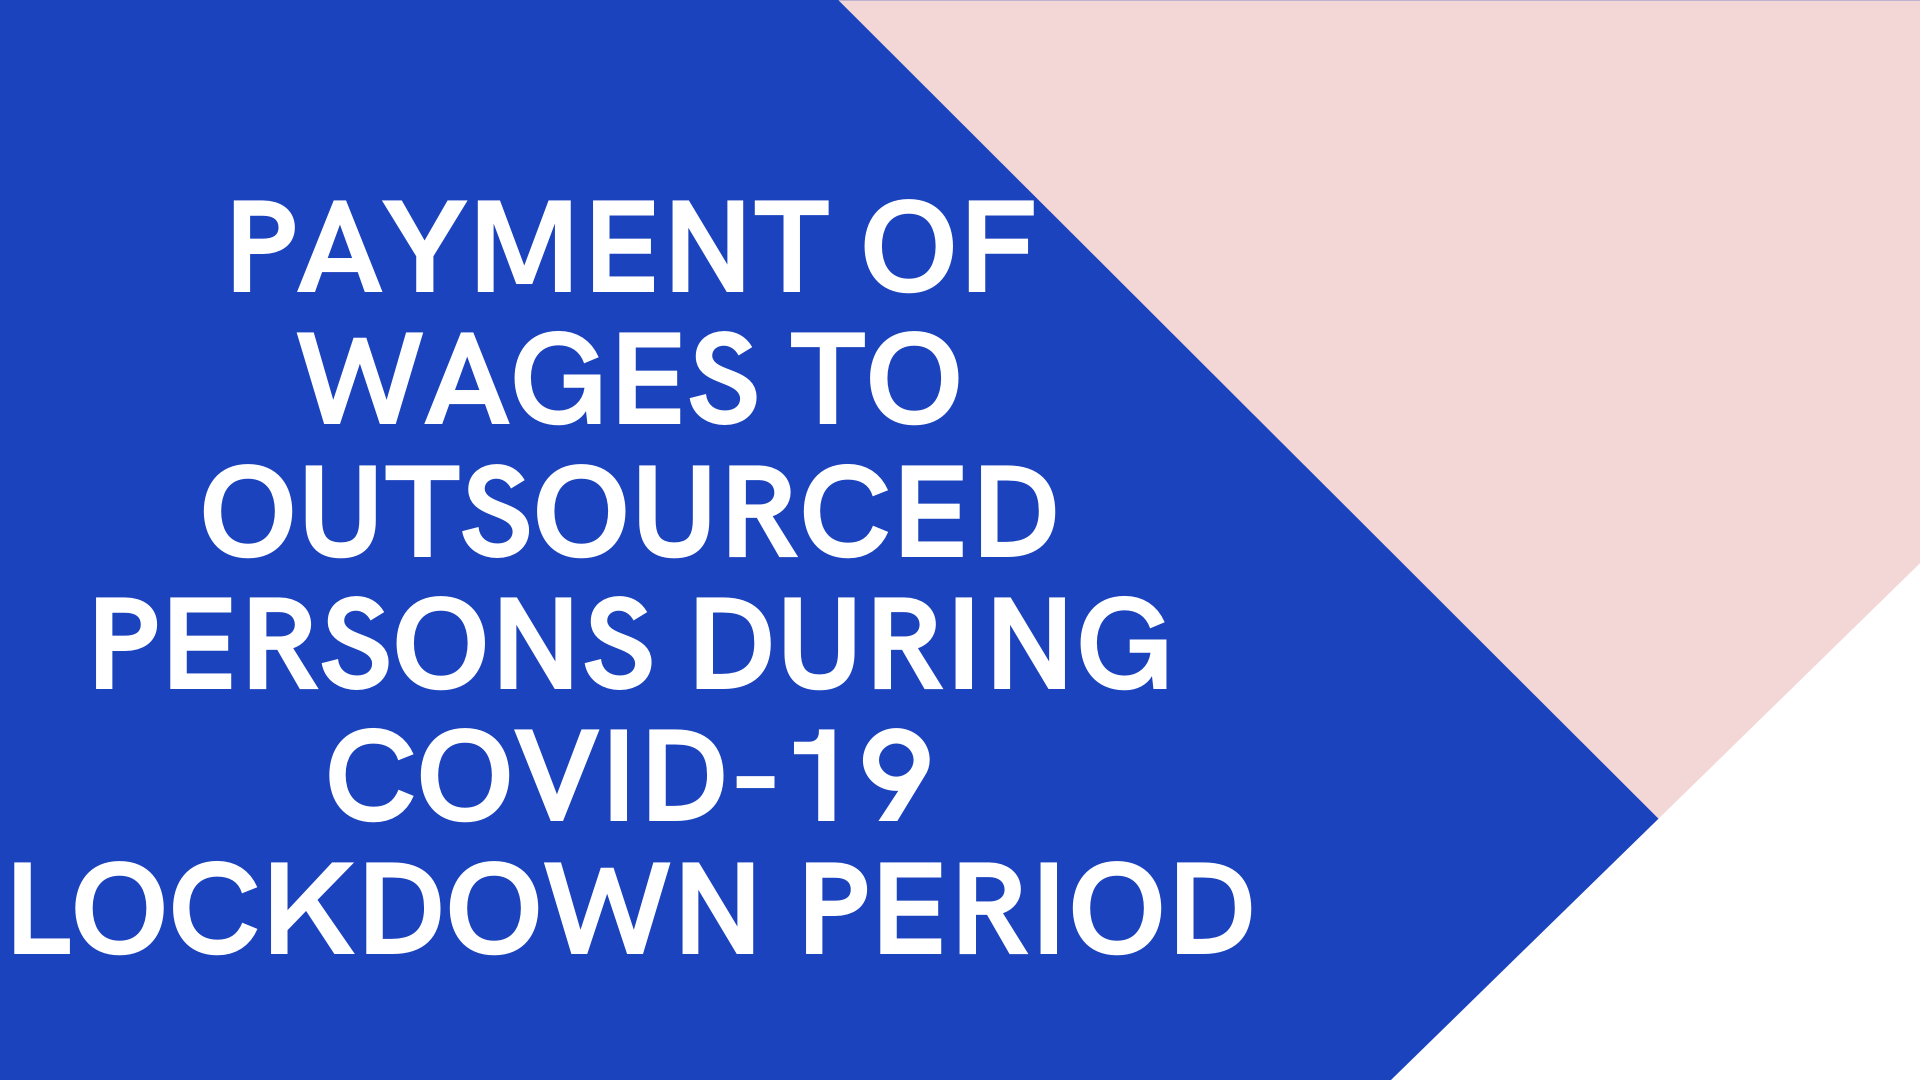 Payment of Wages to Outsourced Persons during lockdown period due to COVID-19.